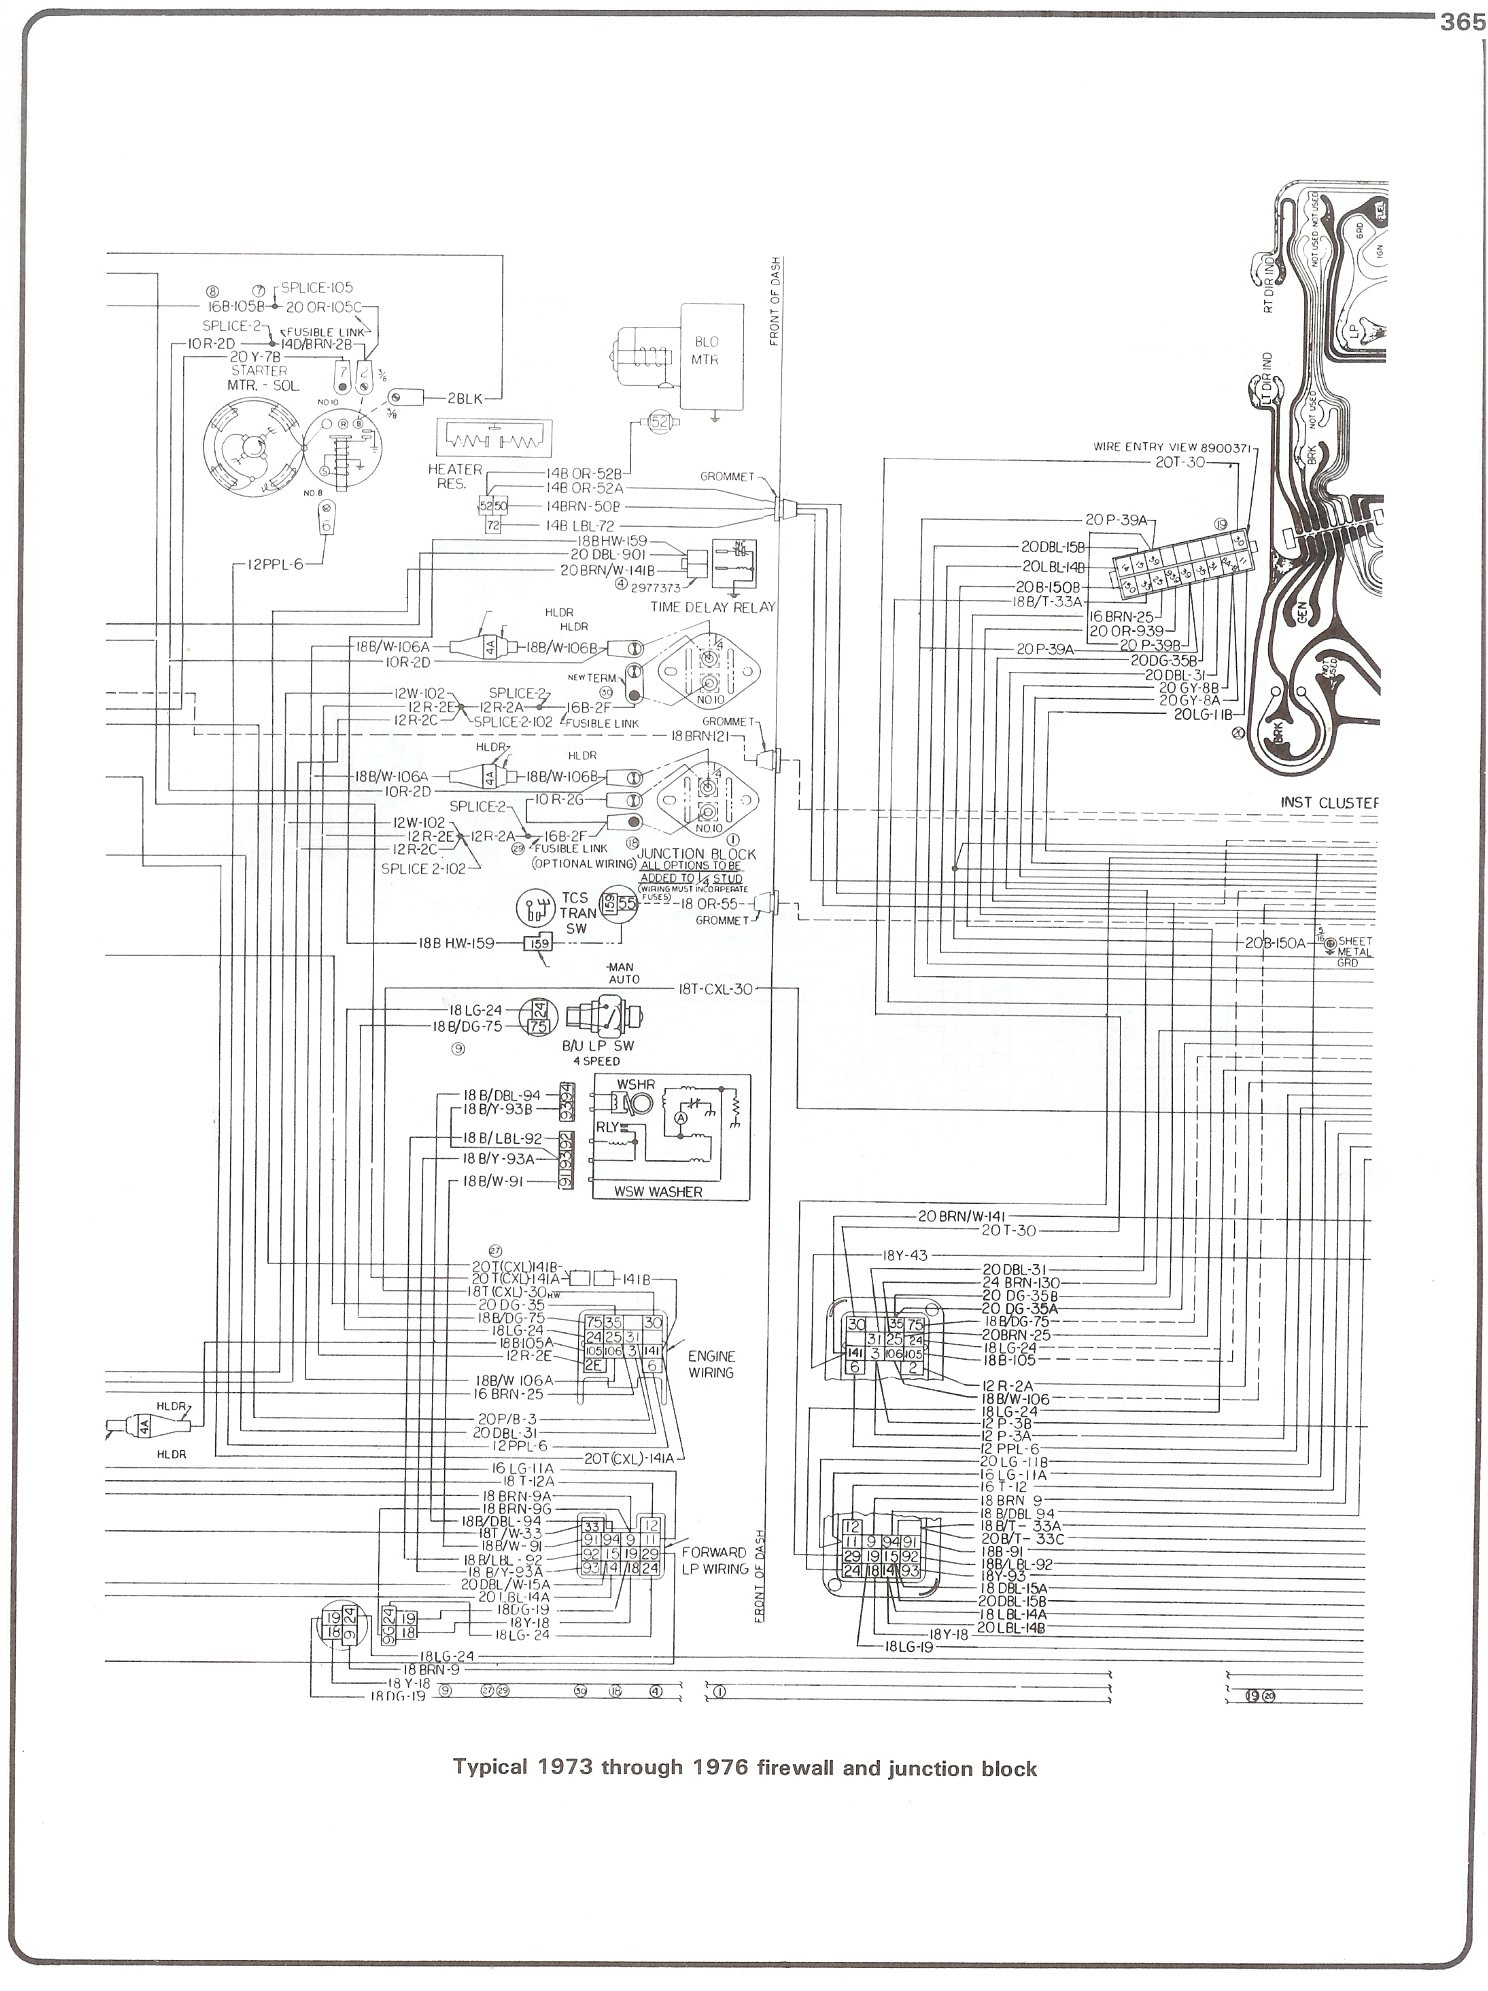 1975 chevy blazer wiring diagram - wiring diagram log crop-build-a -  crop-build-a.superpolobio.it  superpolobio.it